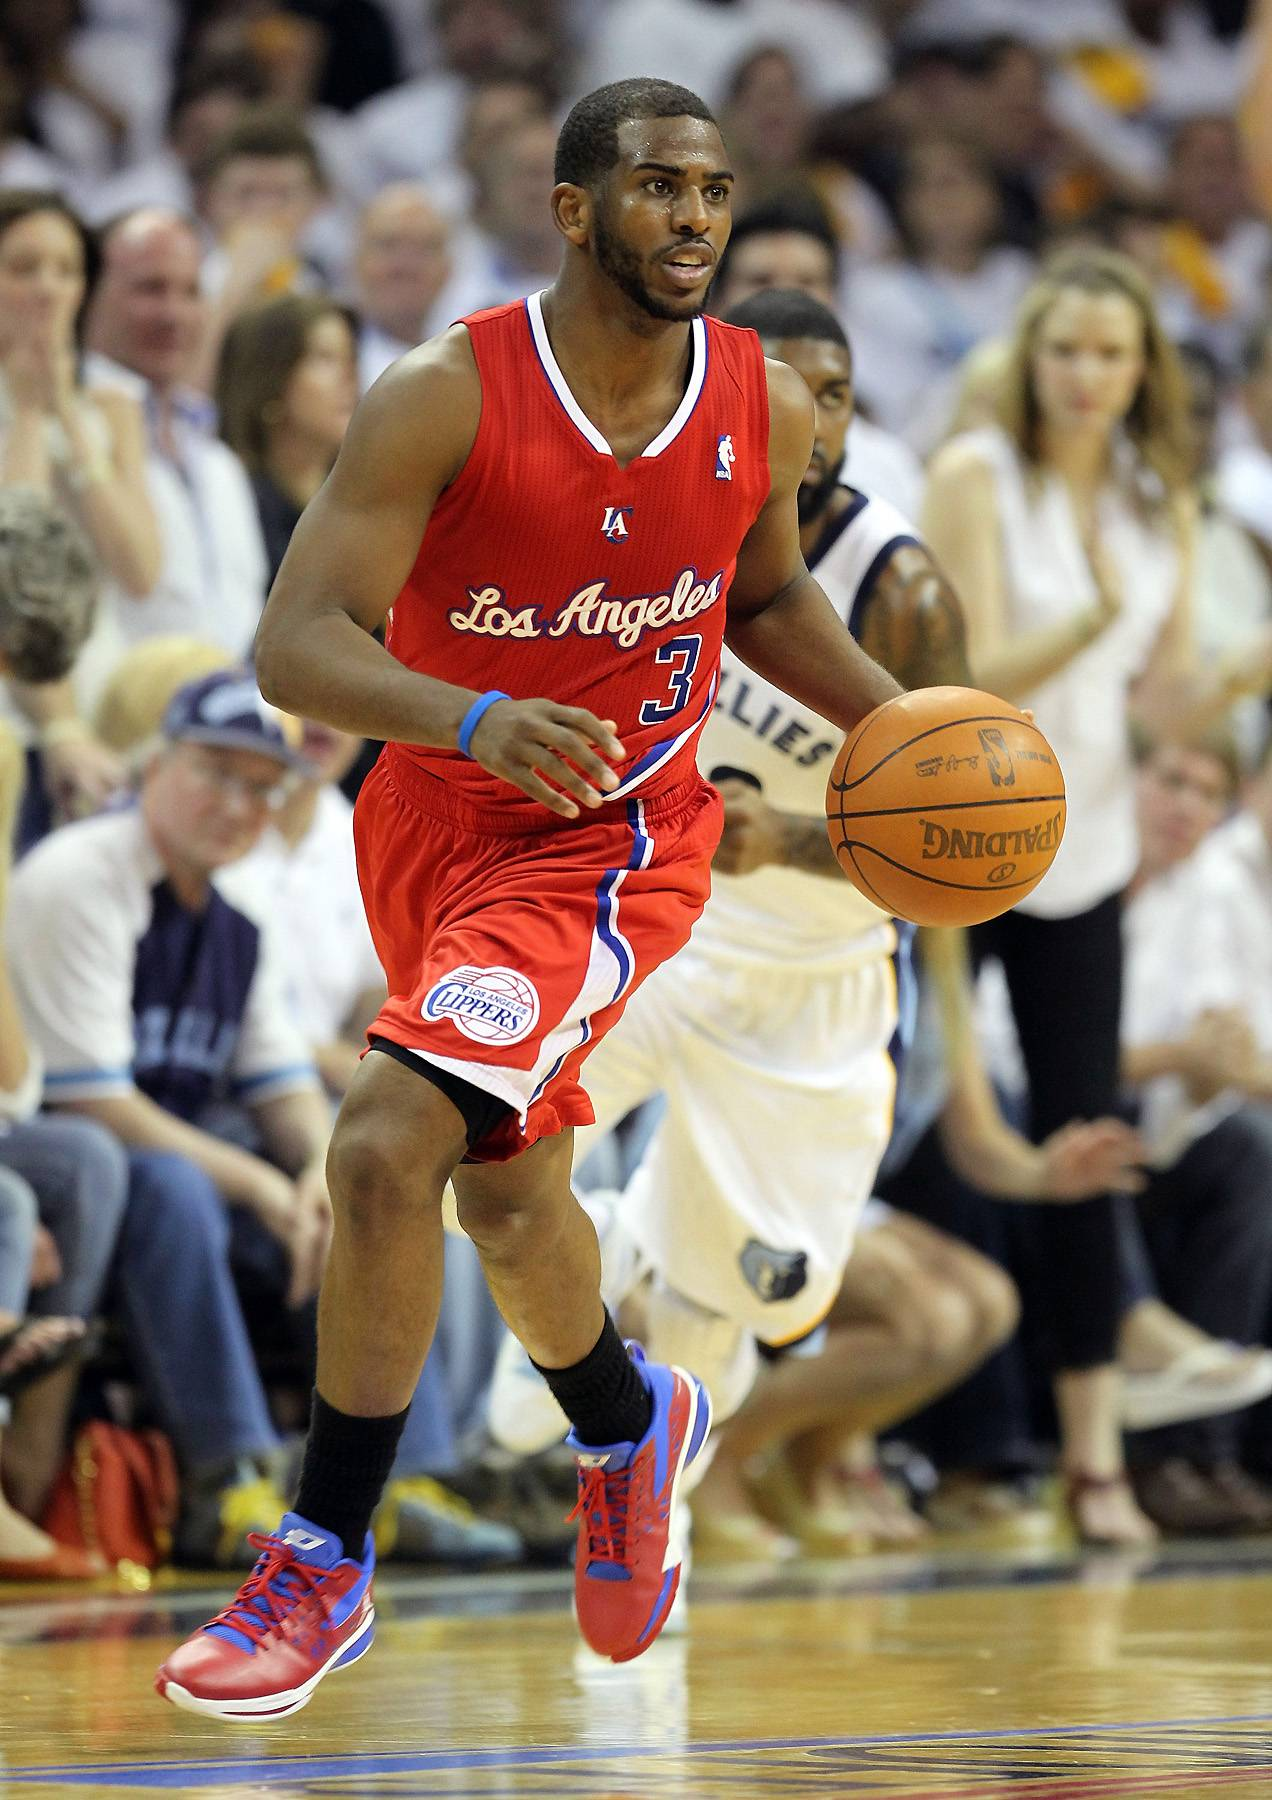 Chris Paul - Men's basketball. NBA team: Los Angeles Clippers.2008 gold medalist(Photo: Andy Lyons/Getty Images)